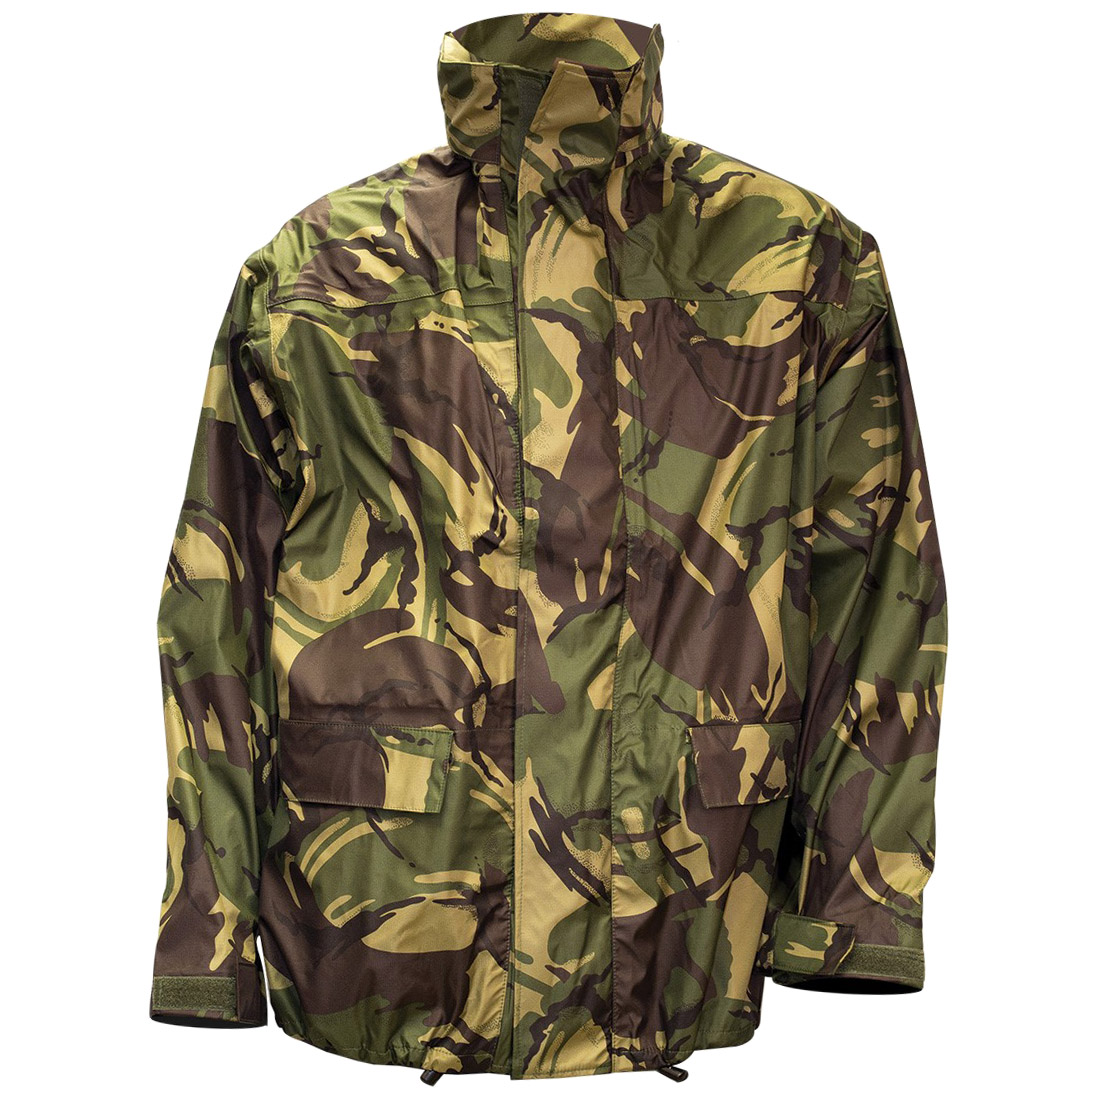 35f99f747b0a2 Details about Highlander Tempest Army Mens Hooded Jacket Waterproof  Windproof British DPM Camo